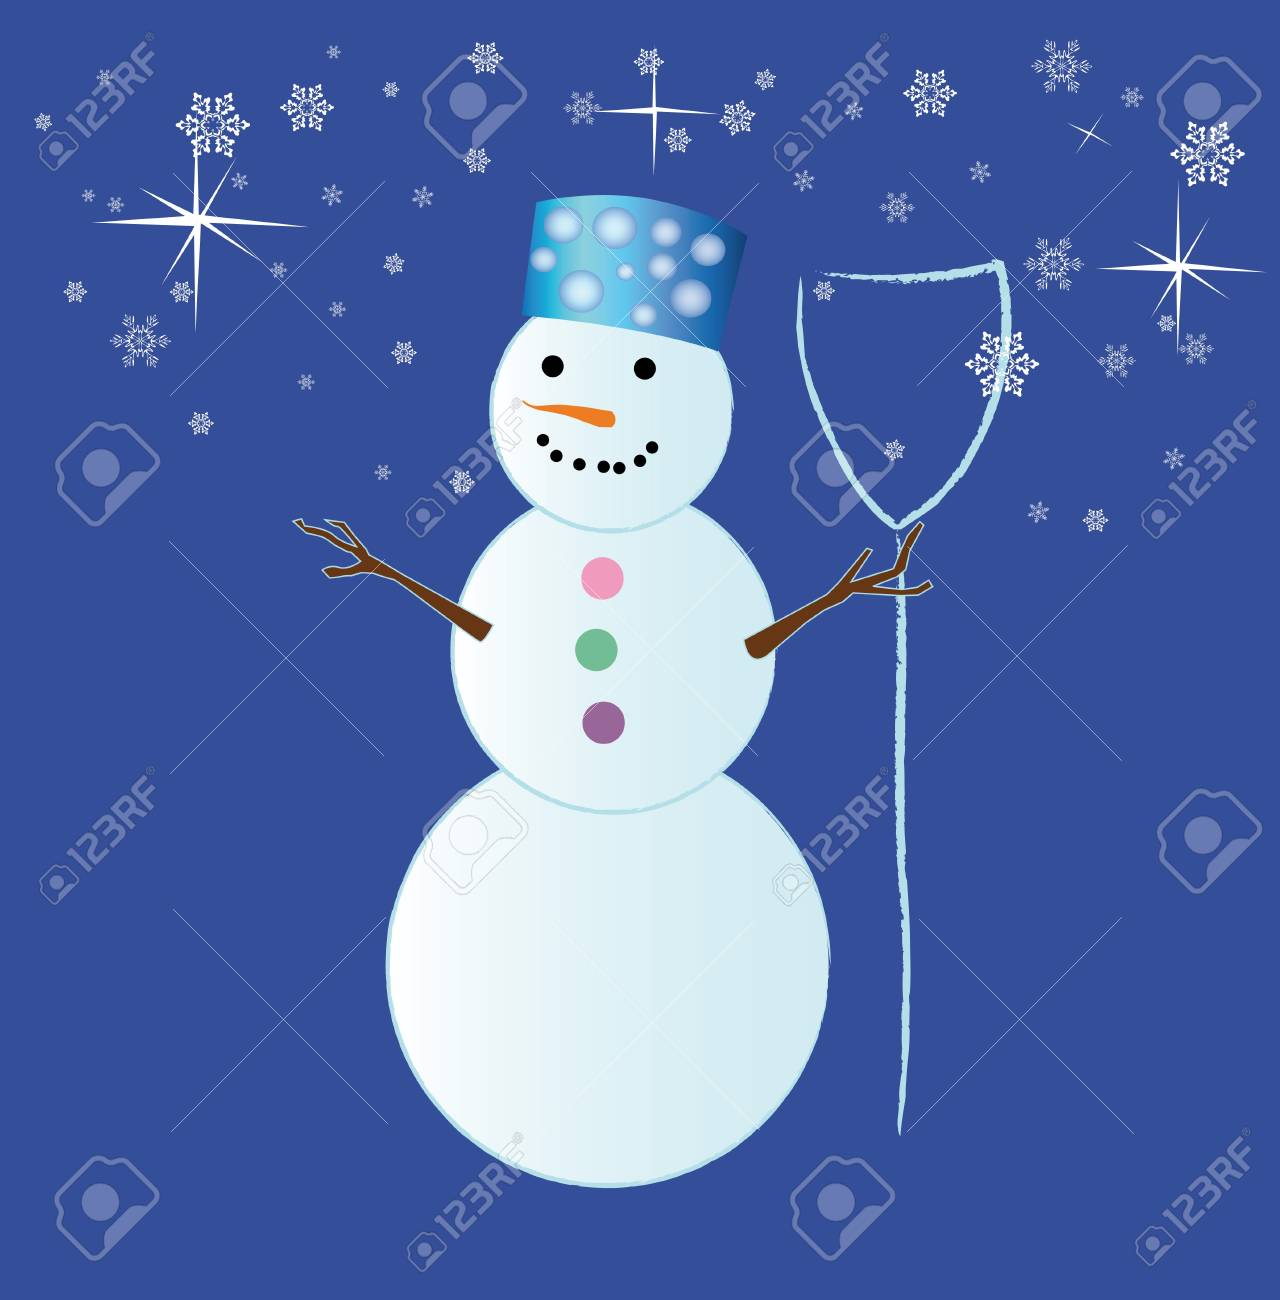 The New Year's snowman Stock Vector - 11601983